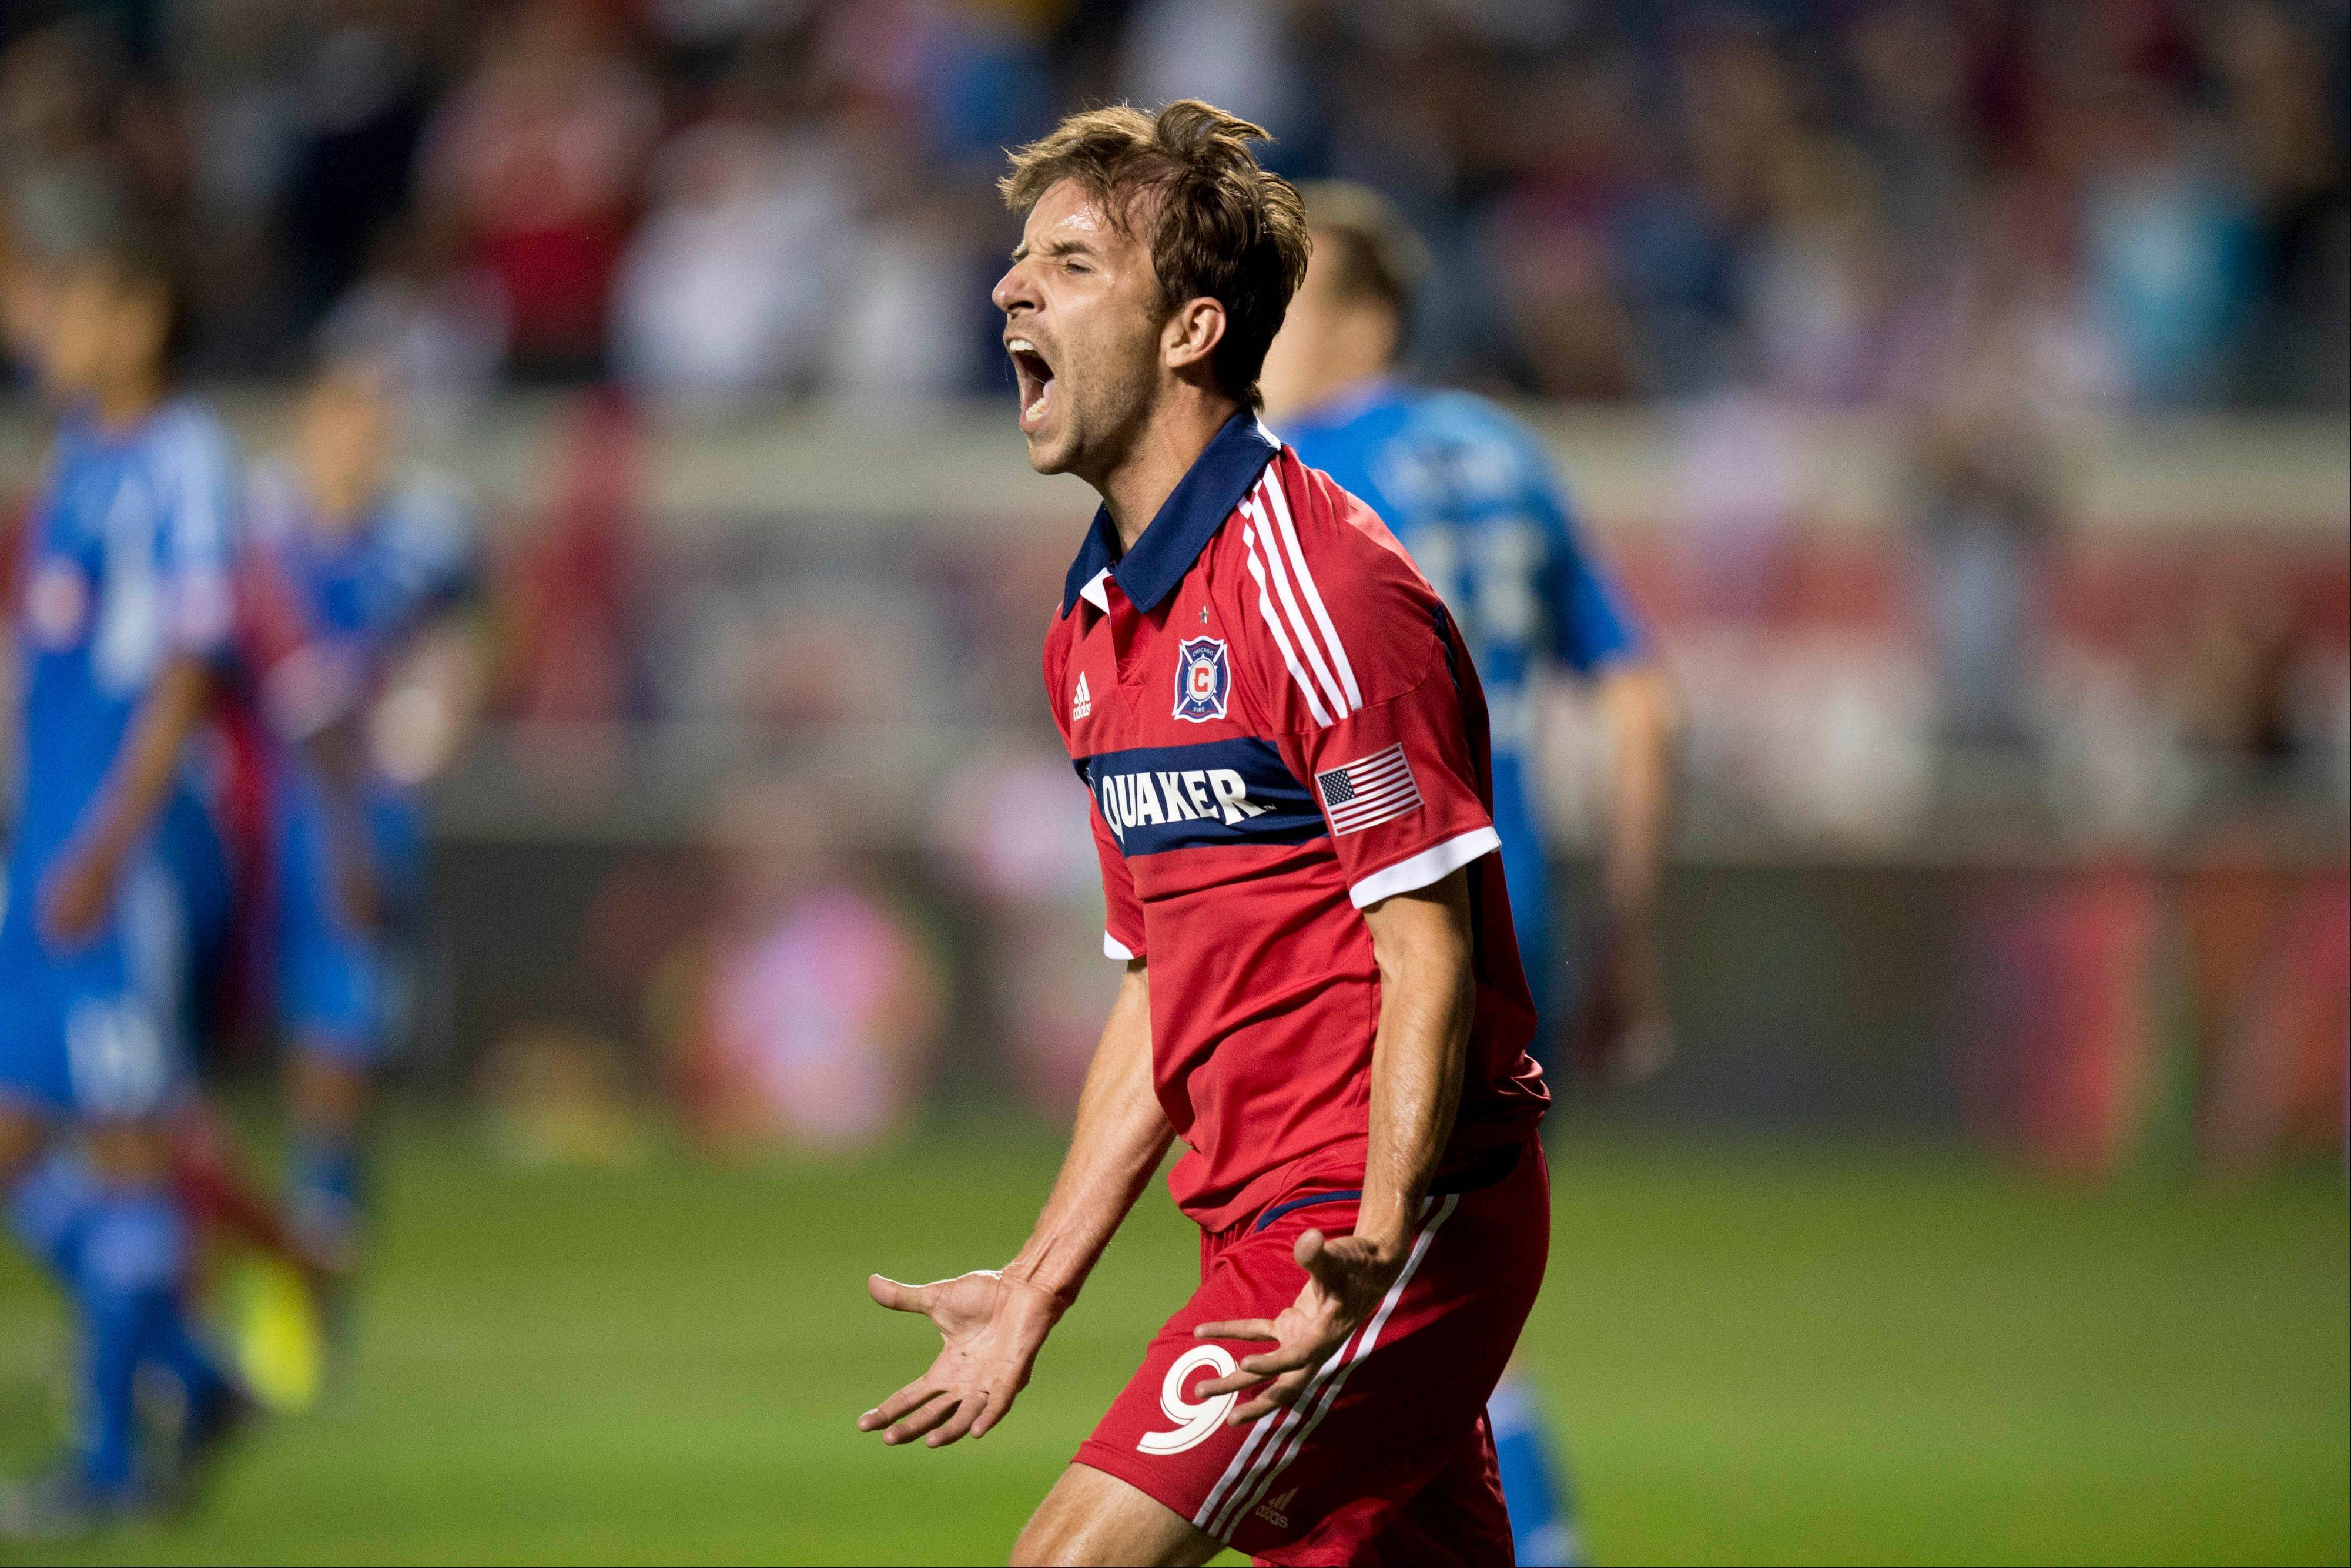 In this photo provided by the Chicago Fire, Chicago Fire forward Mike Magee celebrates his goal during the second half of an MLS soccer game against the Montreal Impact, Saturday, Sept. 28, 2013, in Bridgeview. The Fire and Impact tied 2-2.